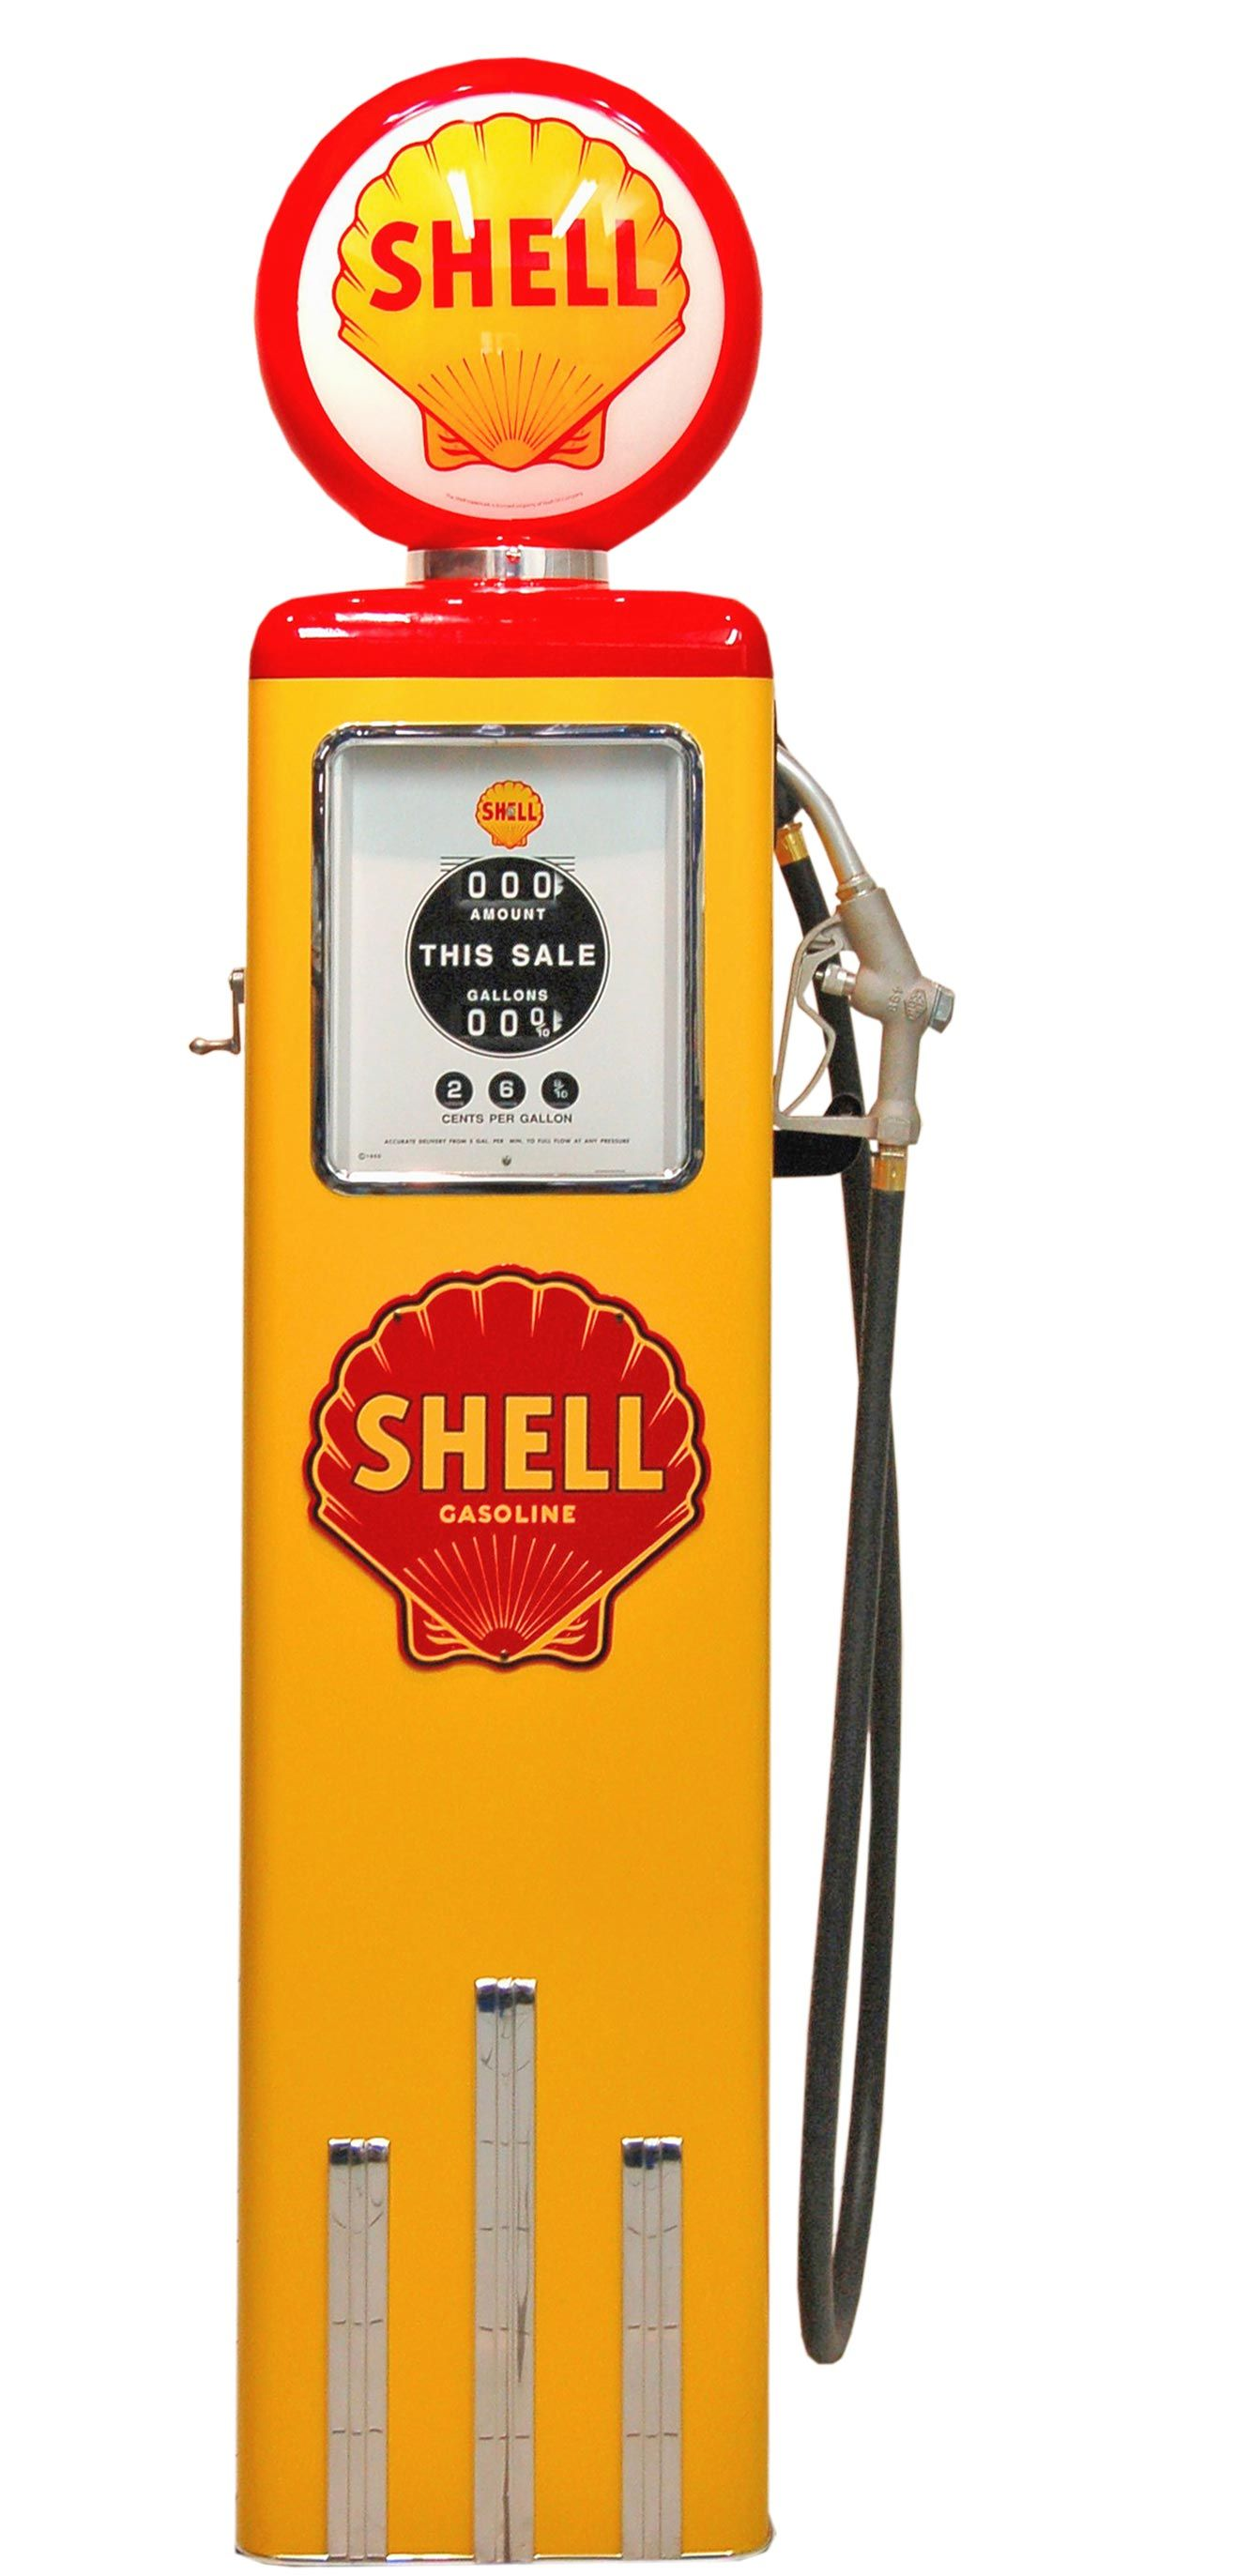 pompe essence shell couleur jaune vintage petrol pumps stations globes. Black Bedroom Furniture Sets. Home Design Ideas